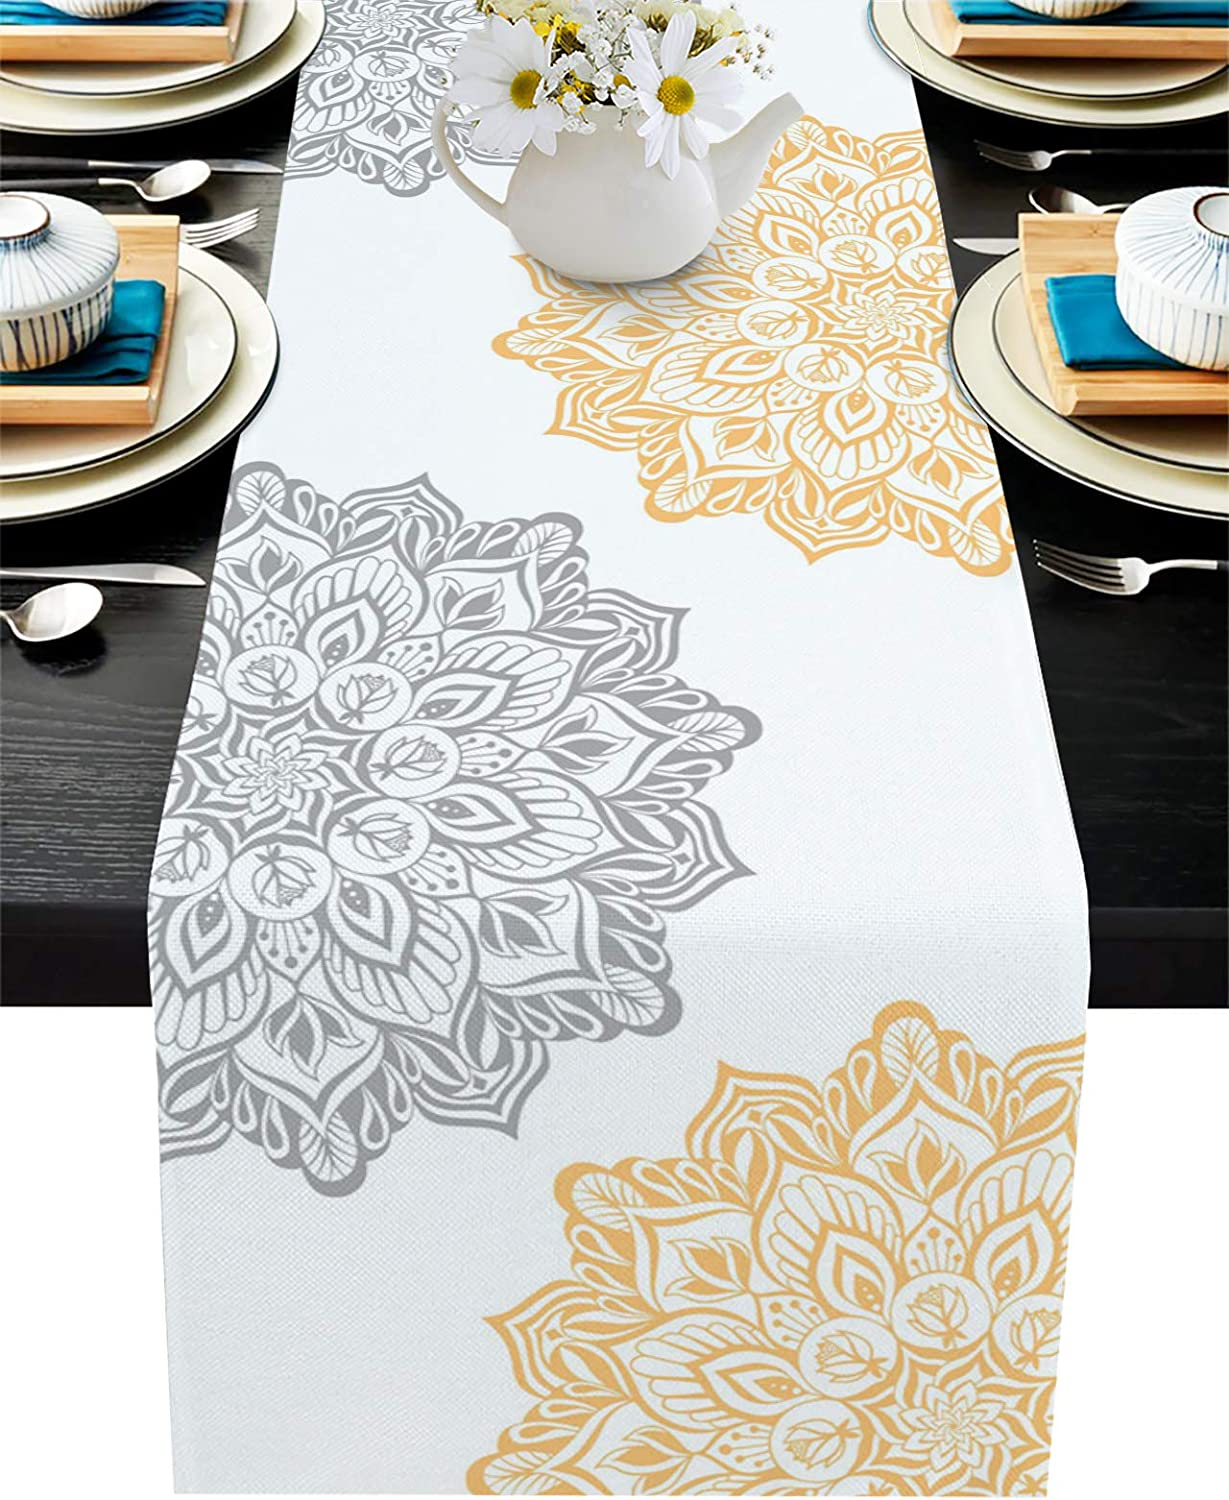 13x70 inch Yellow Grey Cotton Linen Table Runner Dresser Scarves Vintage Mandala Floral Non-Slip Burlap Rectangle Table Setting Decor for Wedding Party Holiday Dinner Home